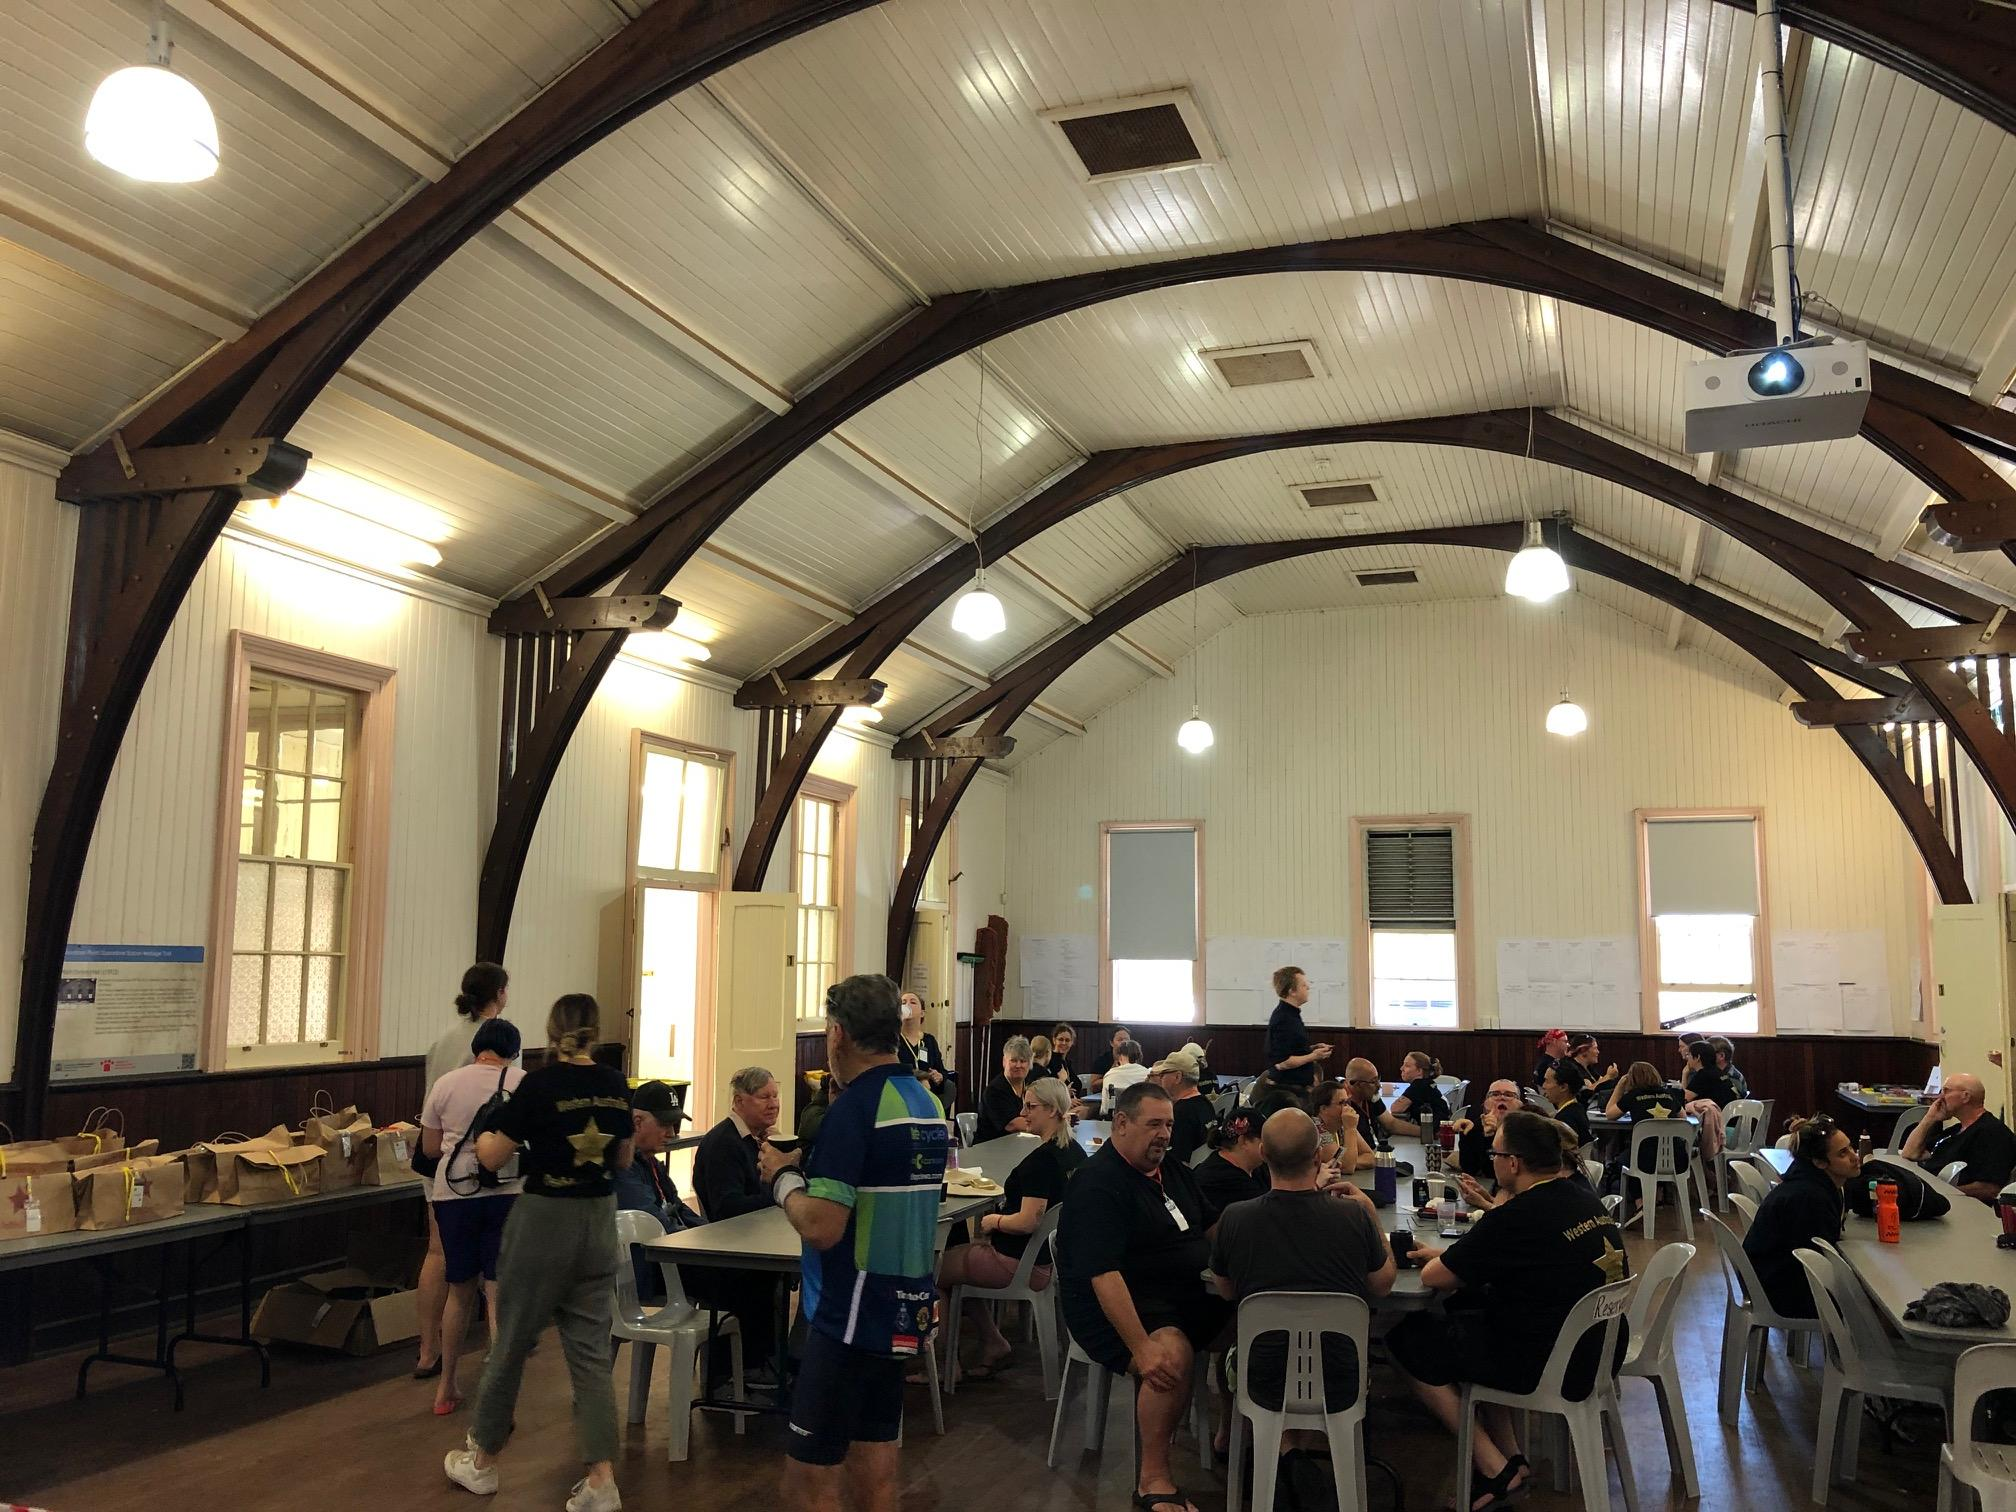 Around fifty people are seated at trestle tables beneath a very high timber paneled roof supported by four sturdy jarrah arches set with enormous curving beams.